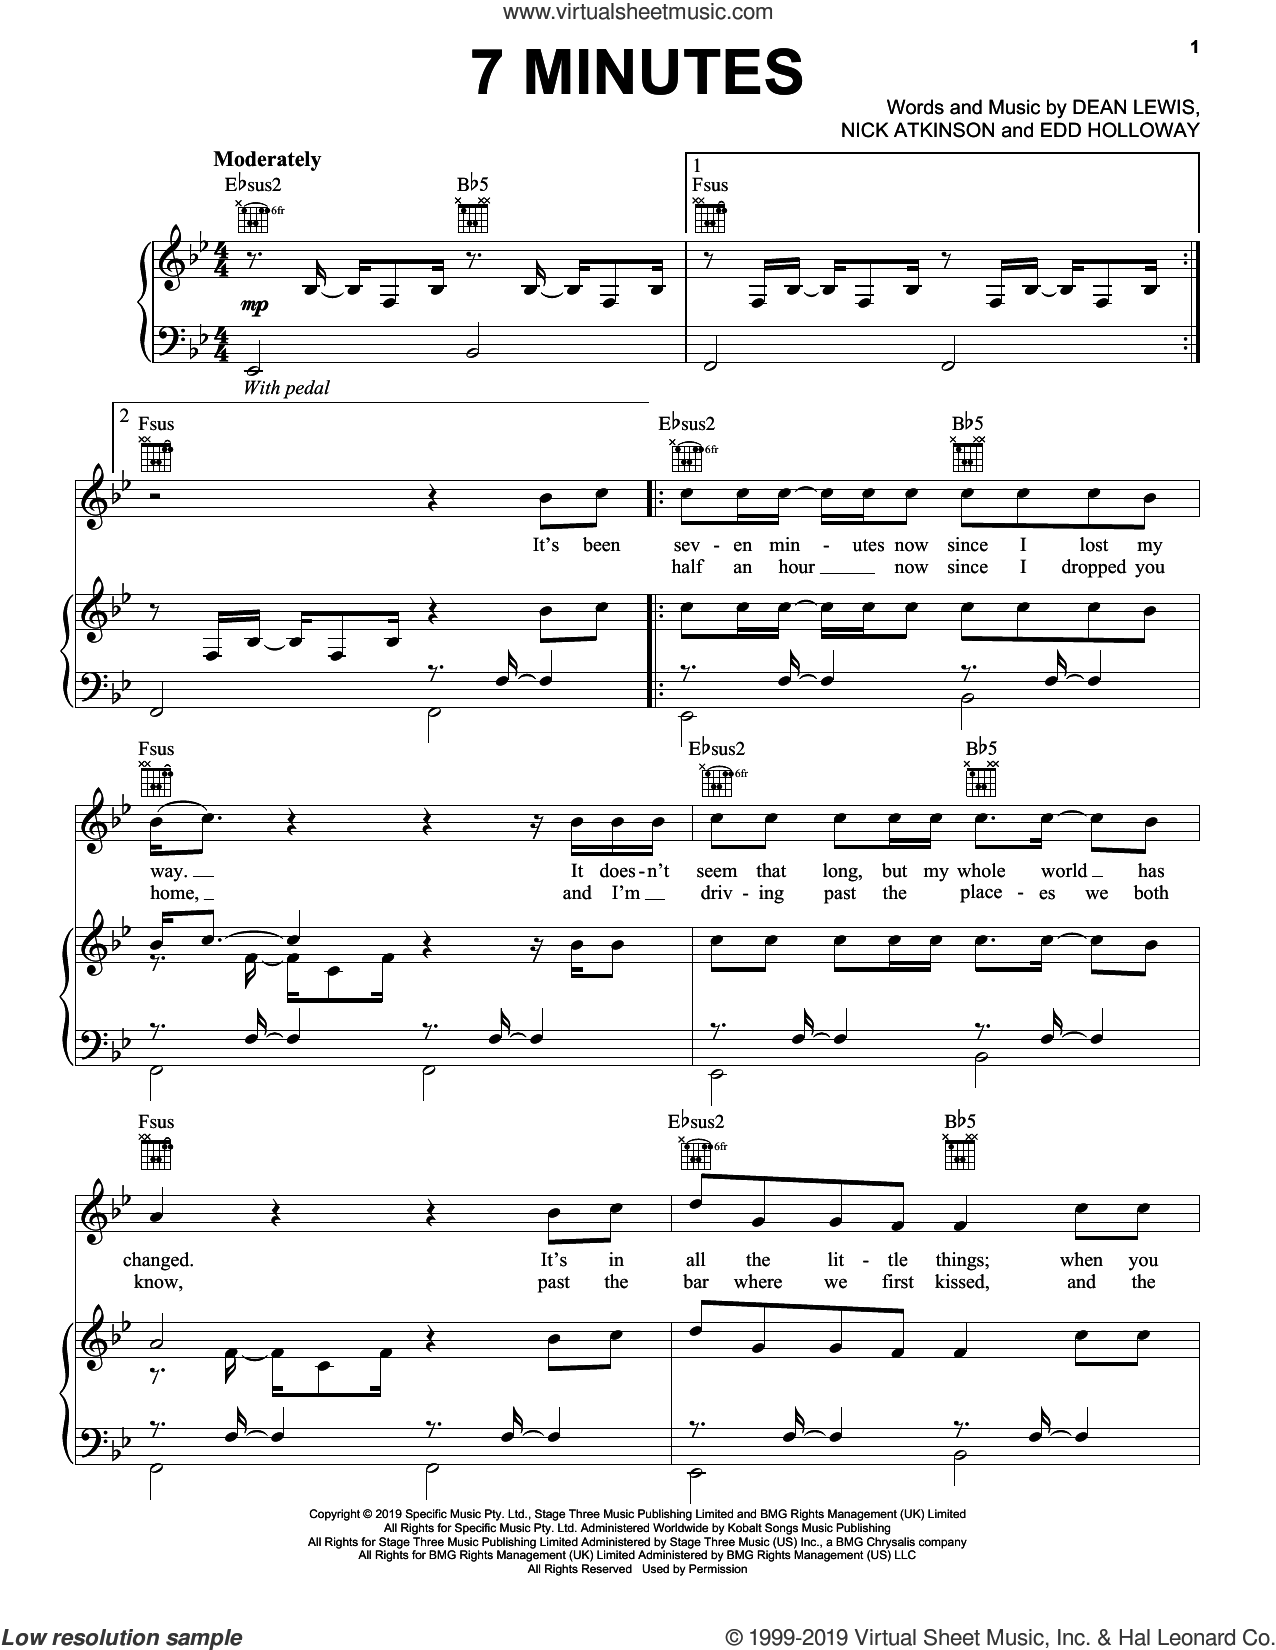 7 Minutes sheet music for voice, piano or guitar by Dean Lewis, Edd Holloway and Nick Atkinson, intermediate skill level